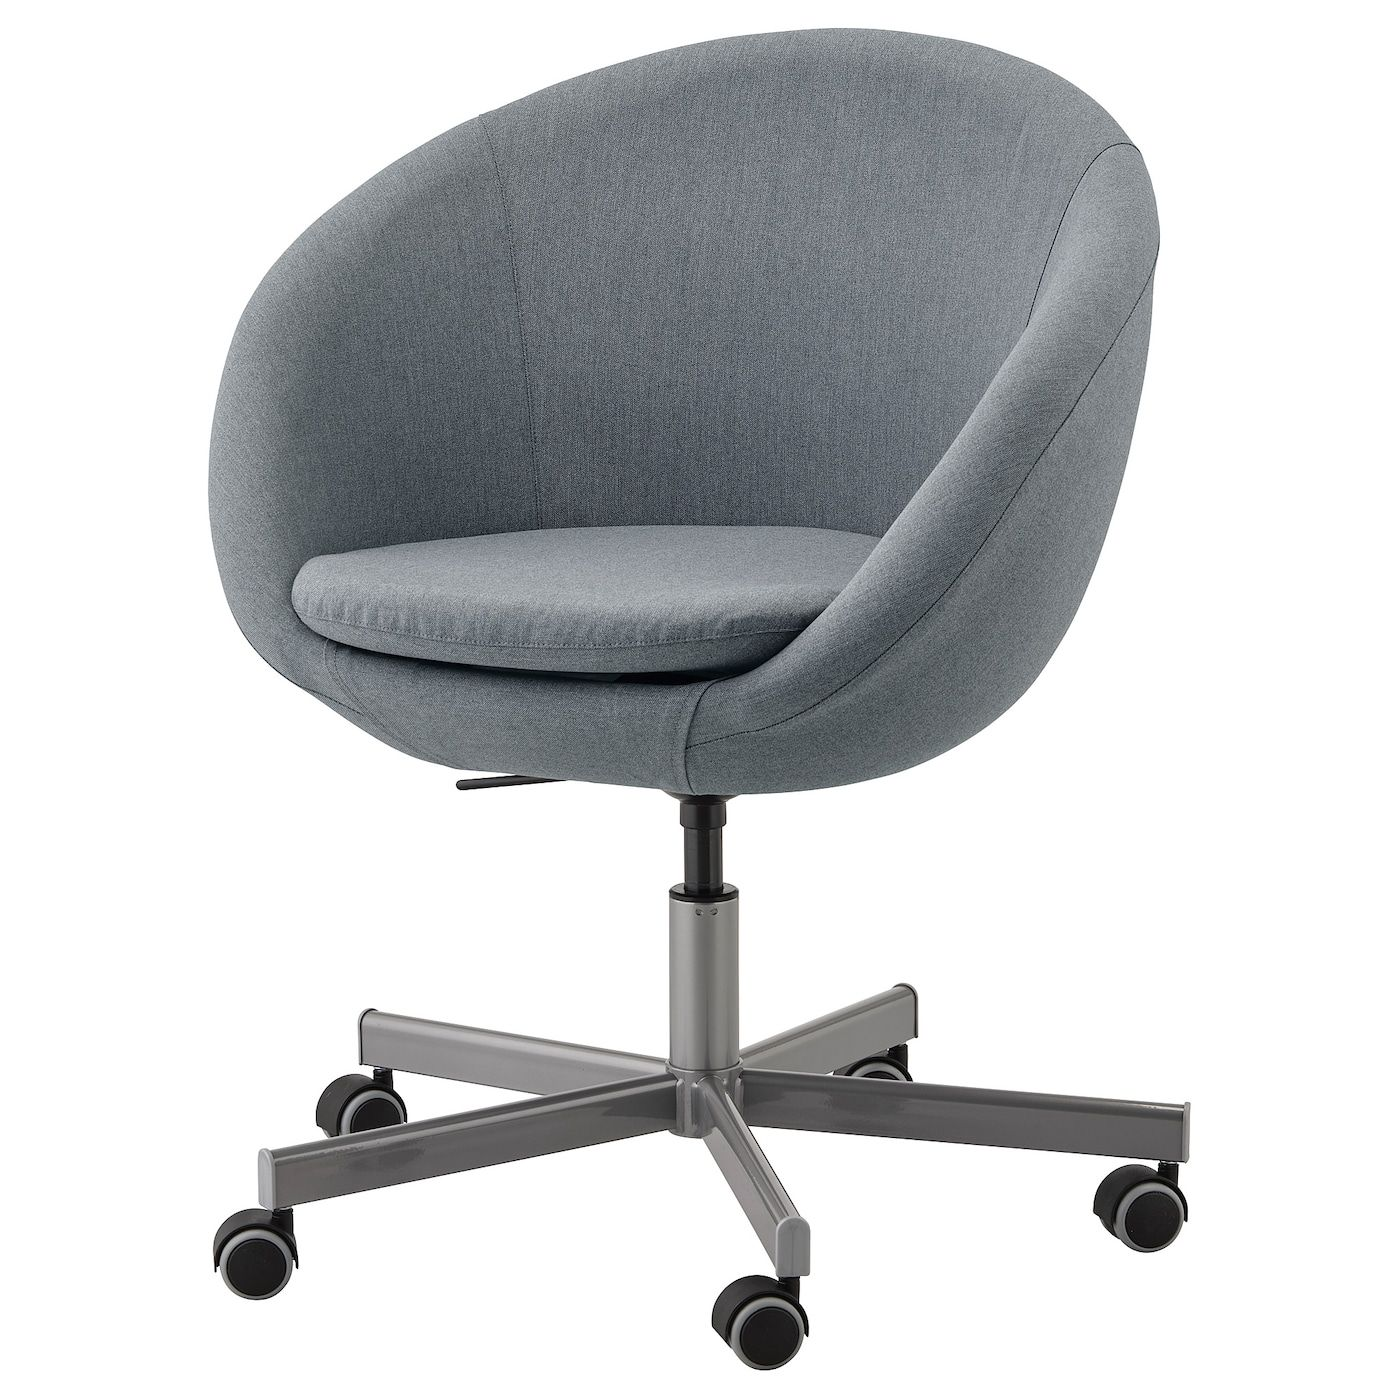 Skruvsta Swivel Chair Vissle Gray Ikea In 2020 Swivel Chair Chair Ikea Chair